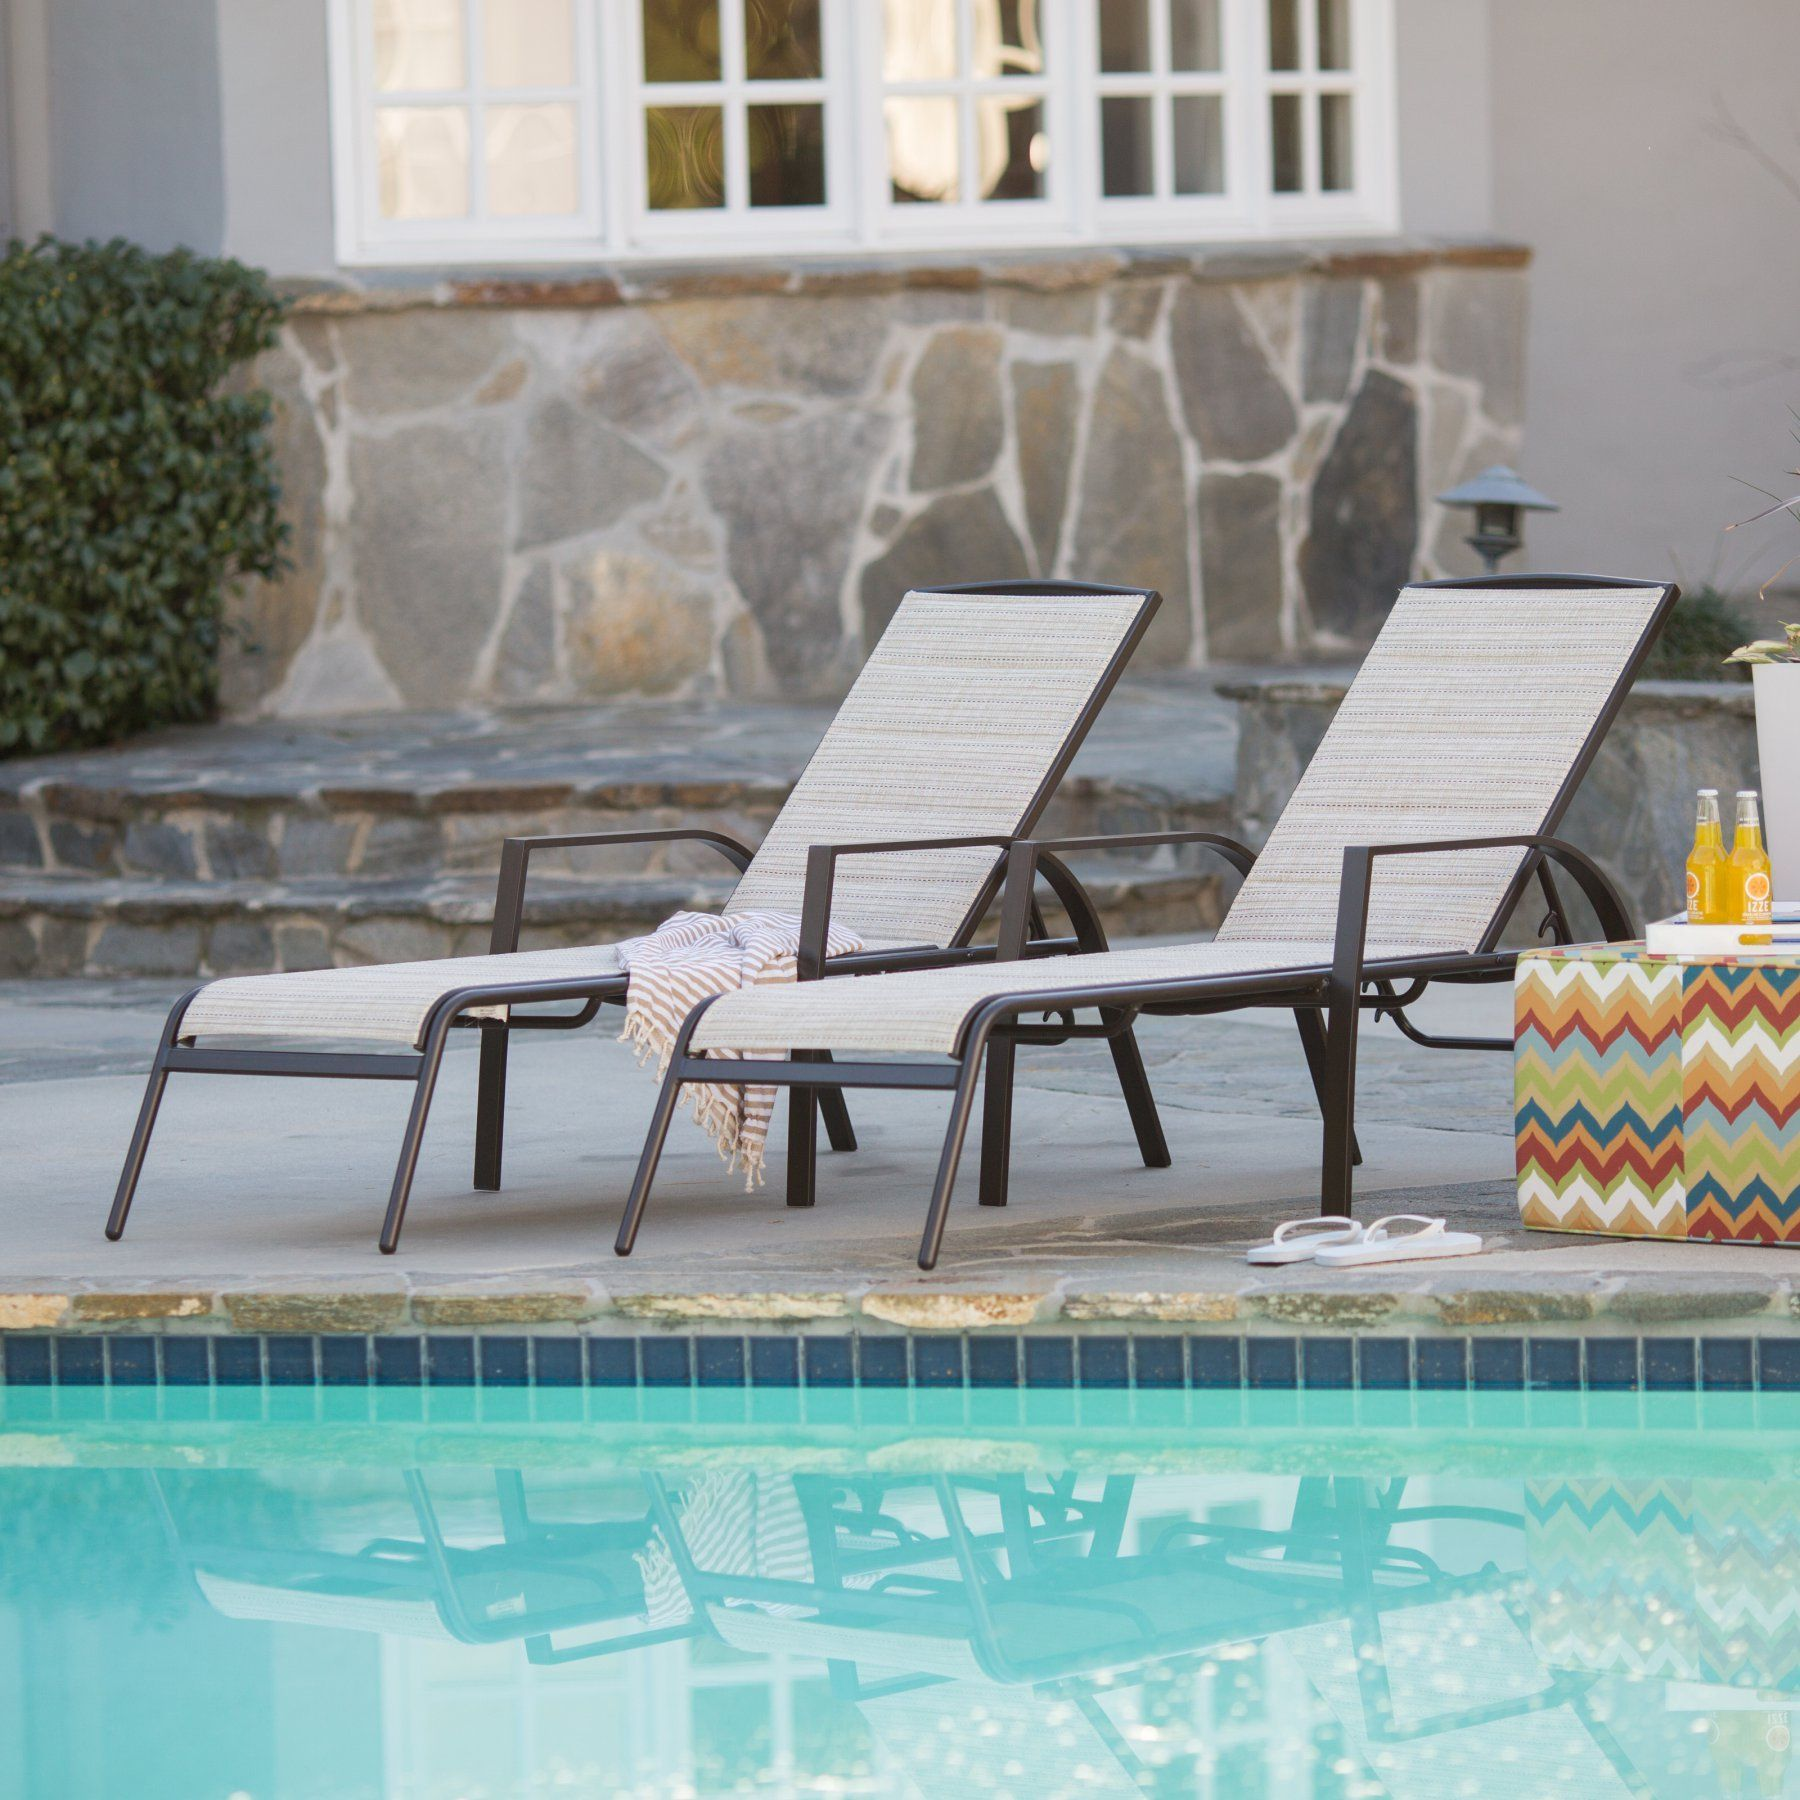 Outdoor Lounge Chair: Del Rey Padded Sling Lounge Chairs - Set of 4 - BW-PBL03B-2032